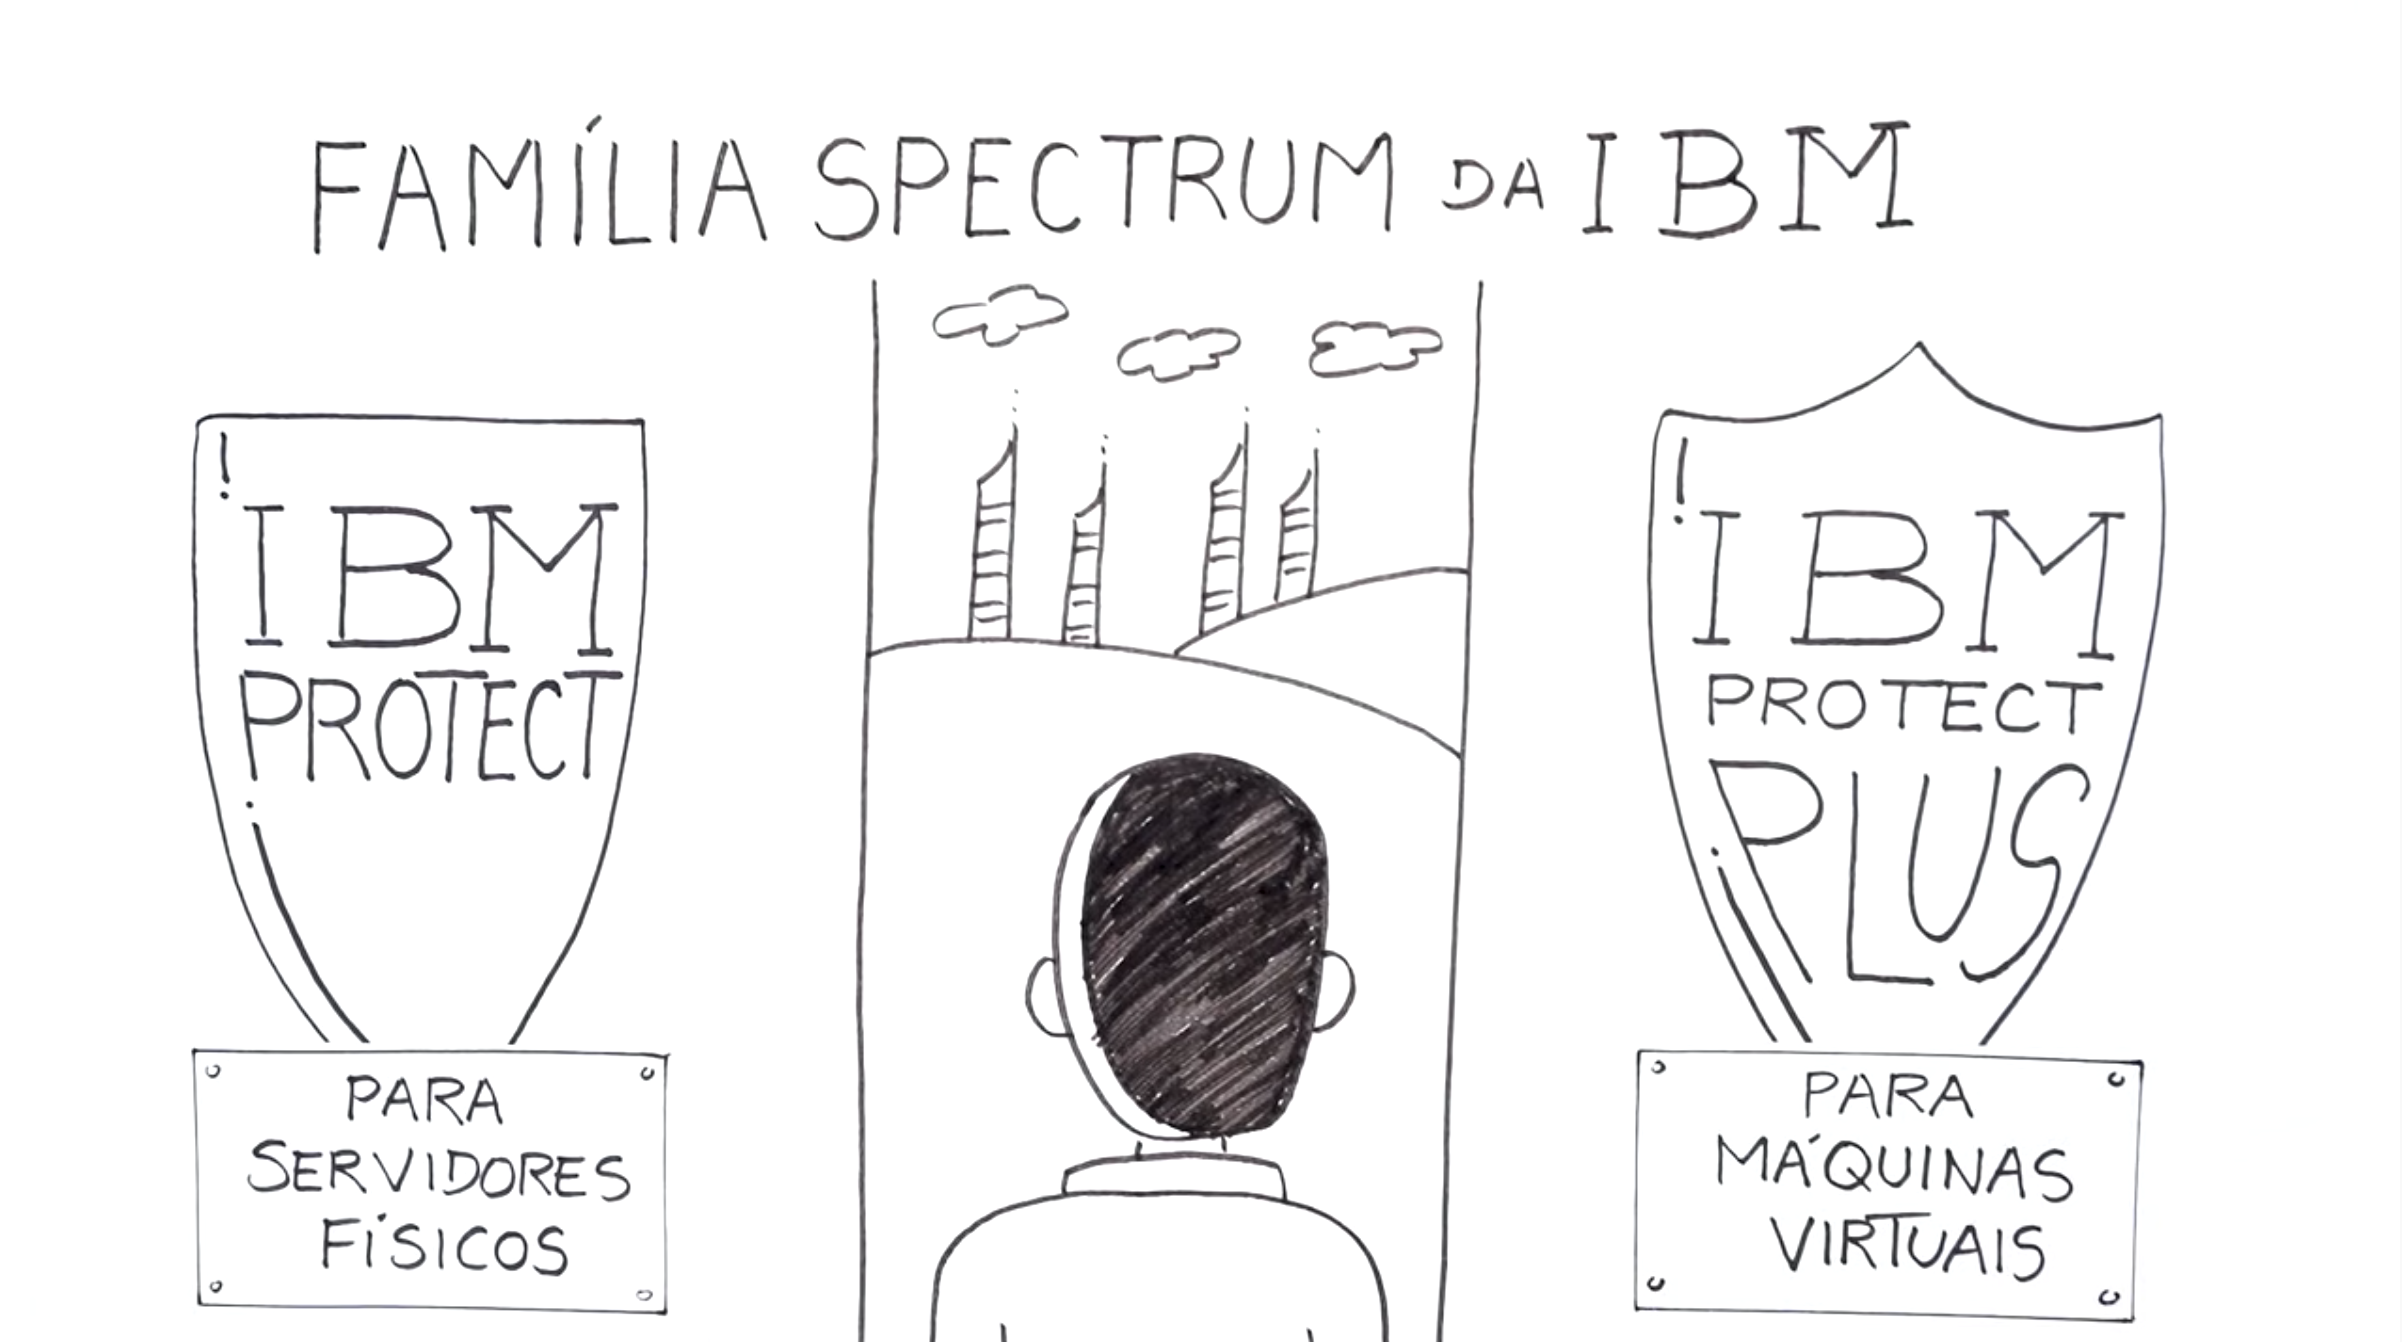 Vídeo: Família Spectrum da IBM: Spectrum Protect + Spectrum Protect Plus